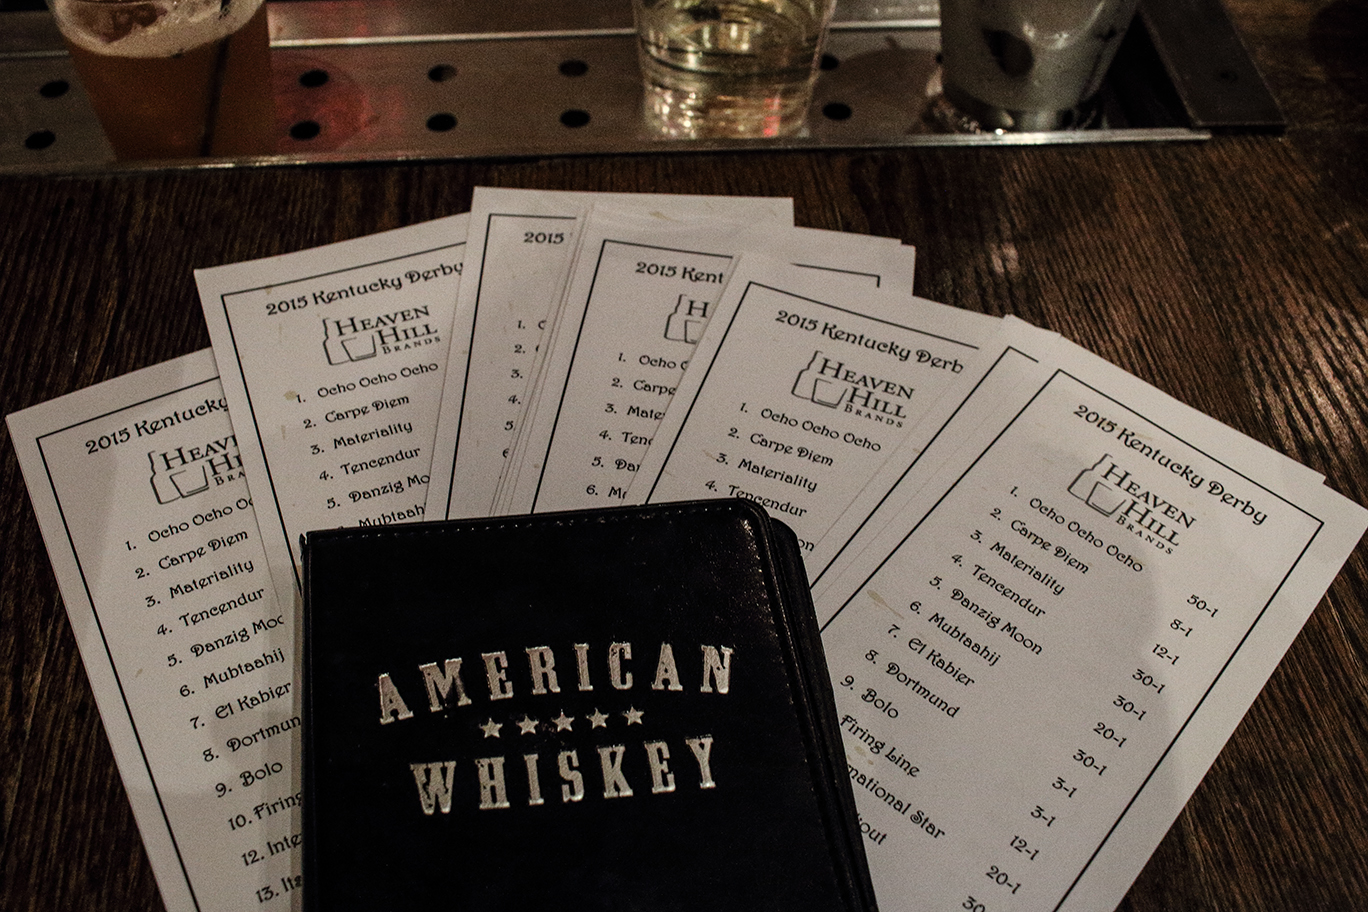 2015 AMERICAN WHISKEY DERBY PARTY